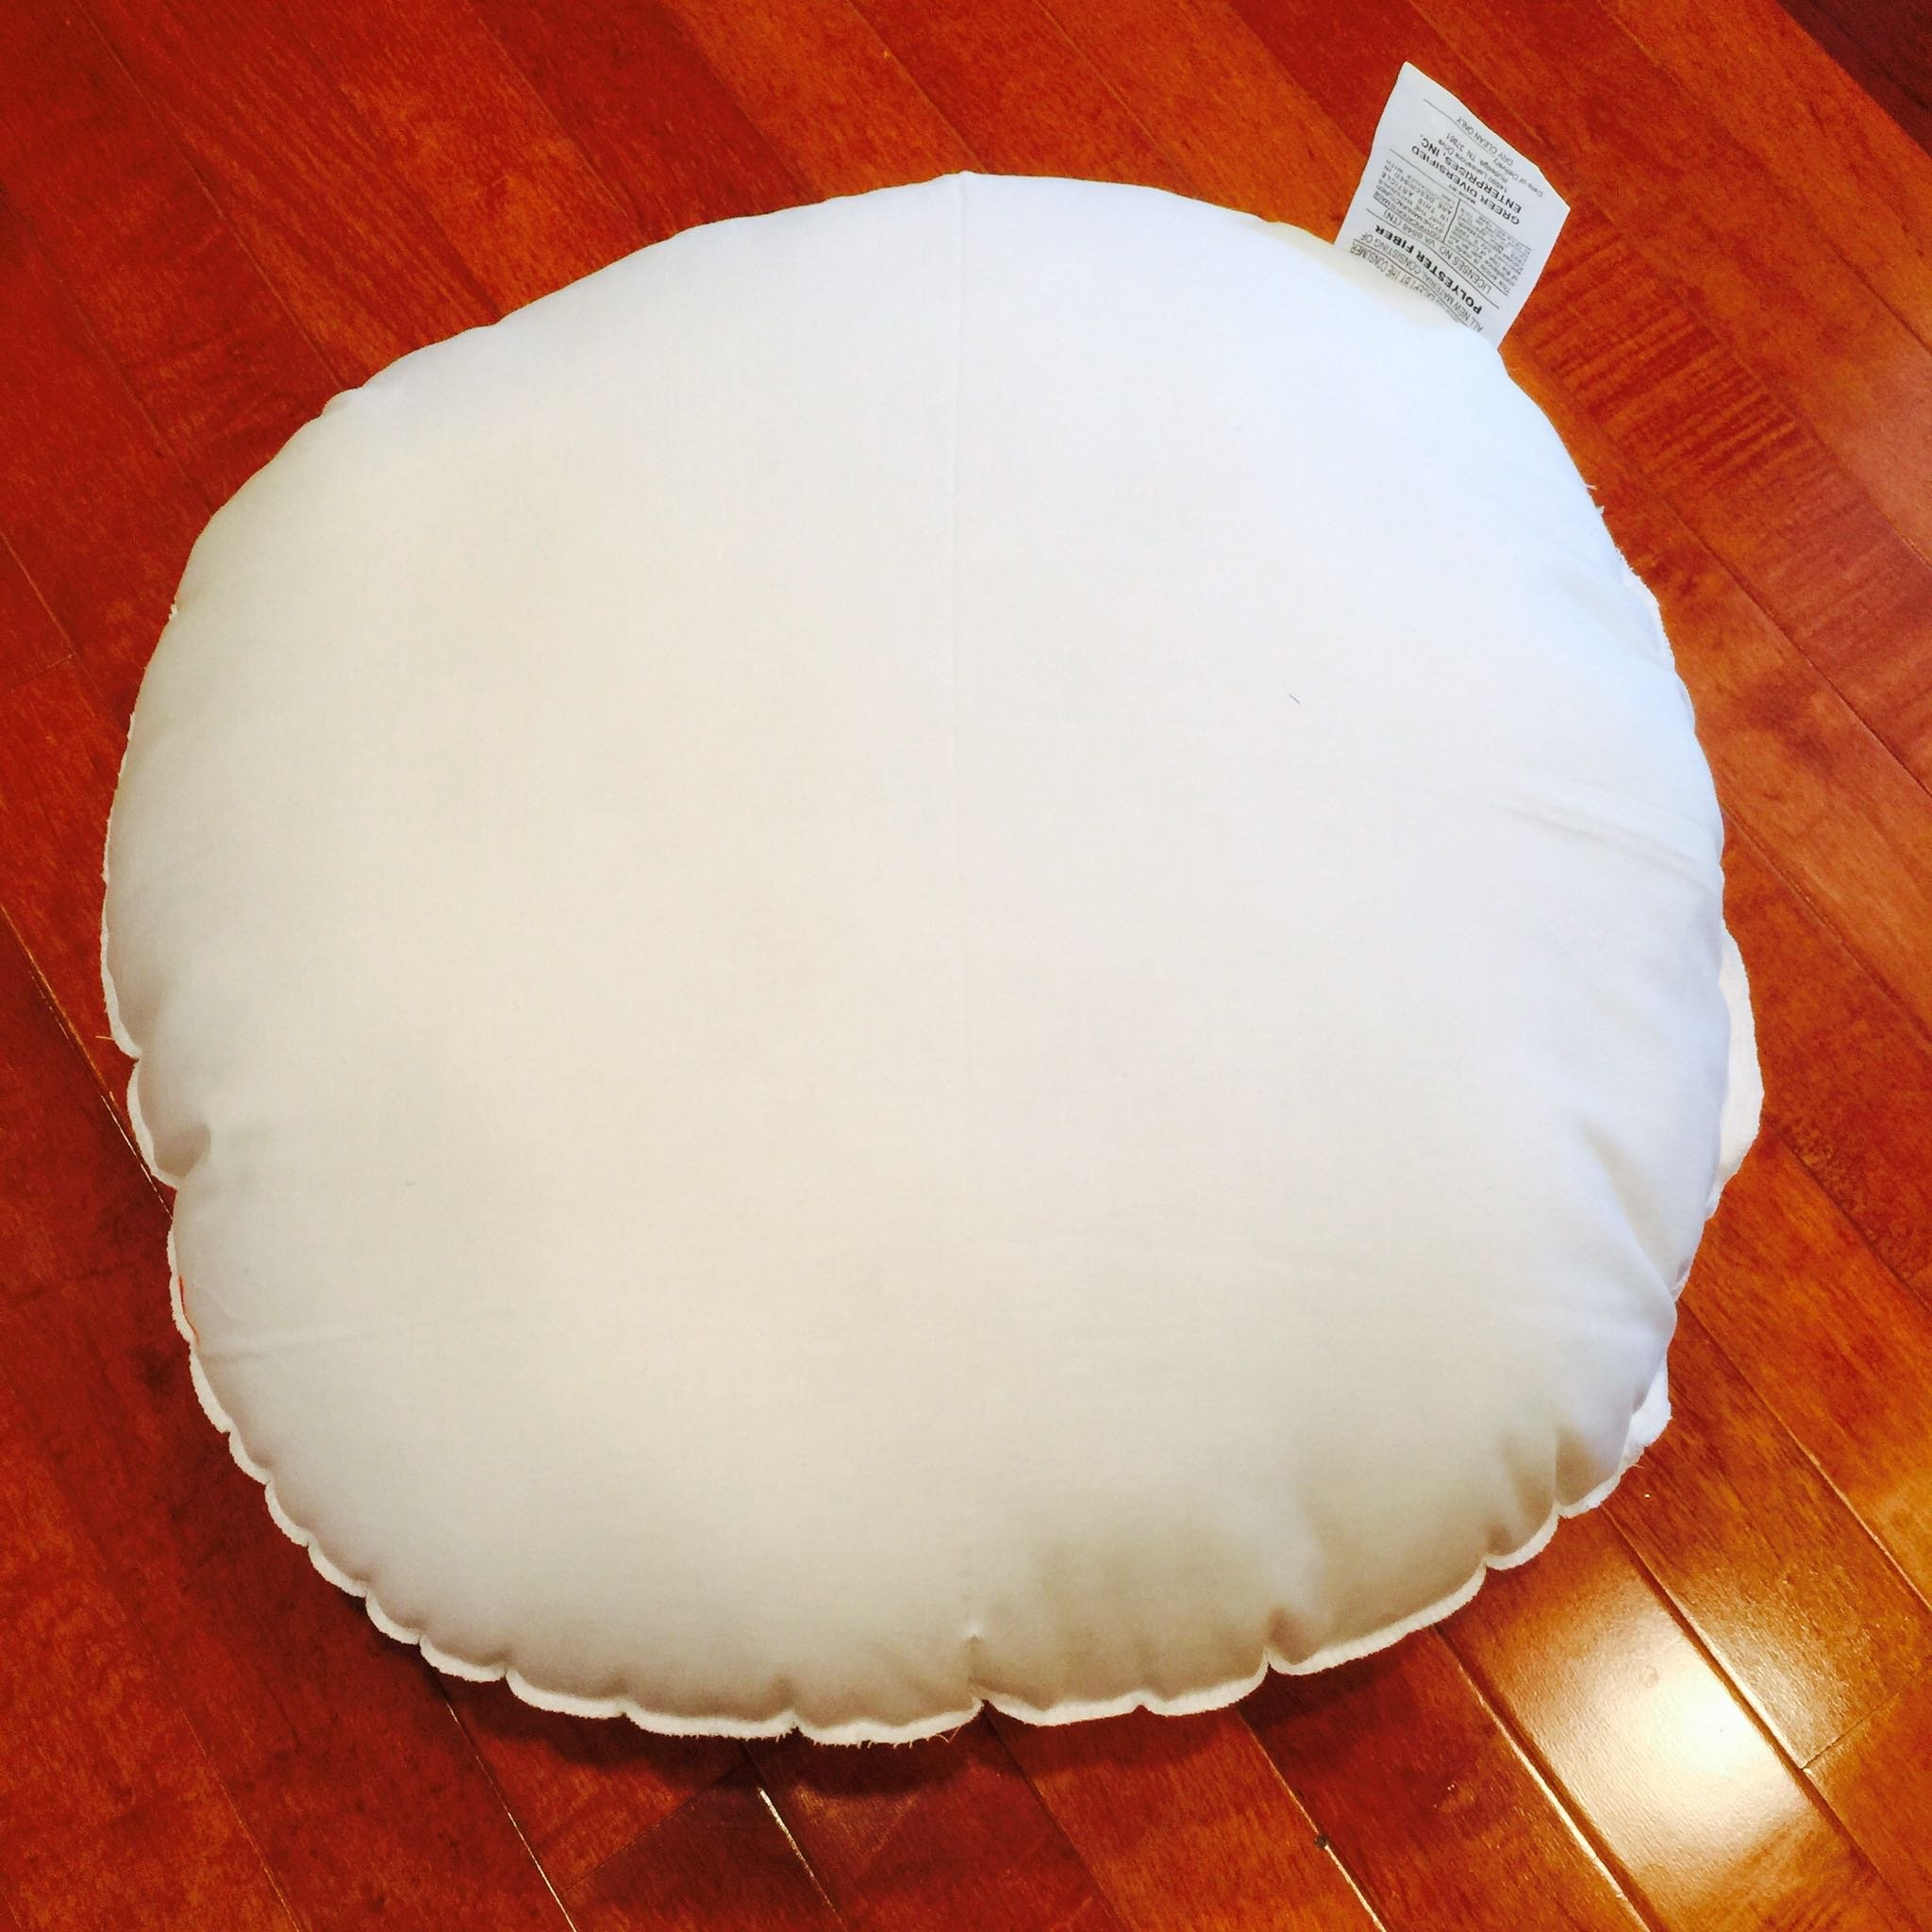 Round Polyester Woven Pillow Form - 41 by Pillow Cubes